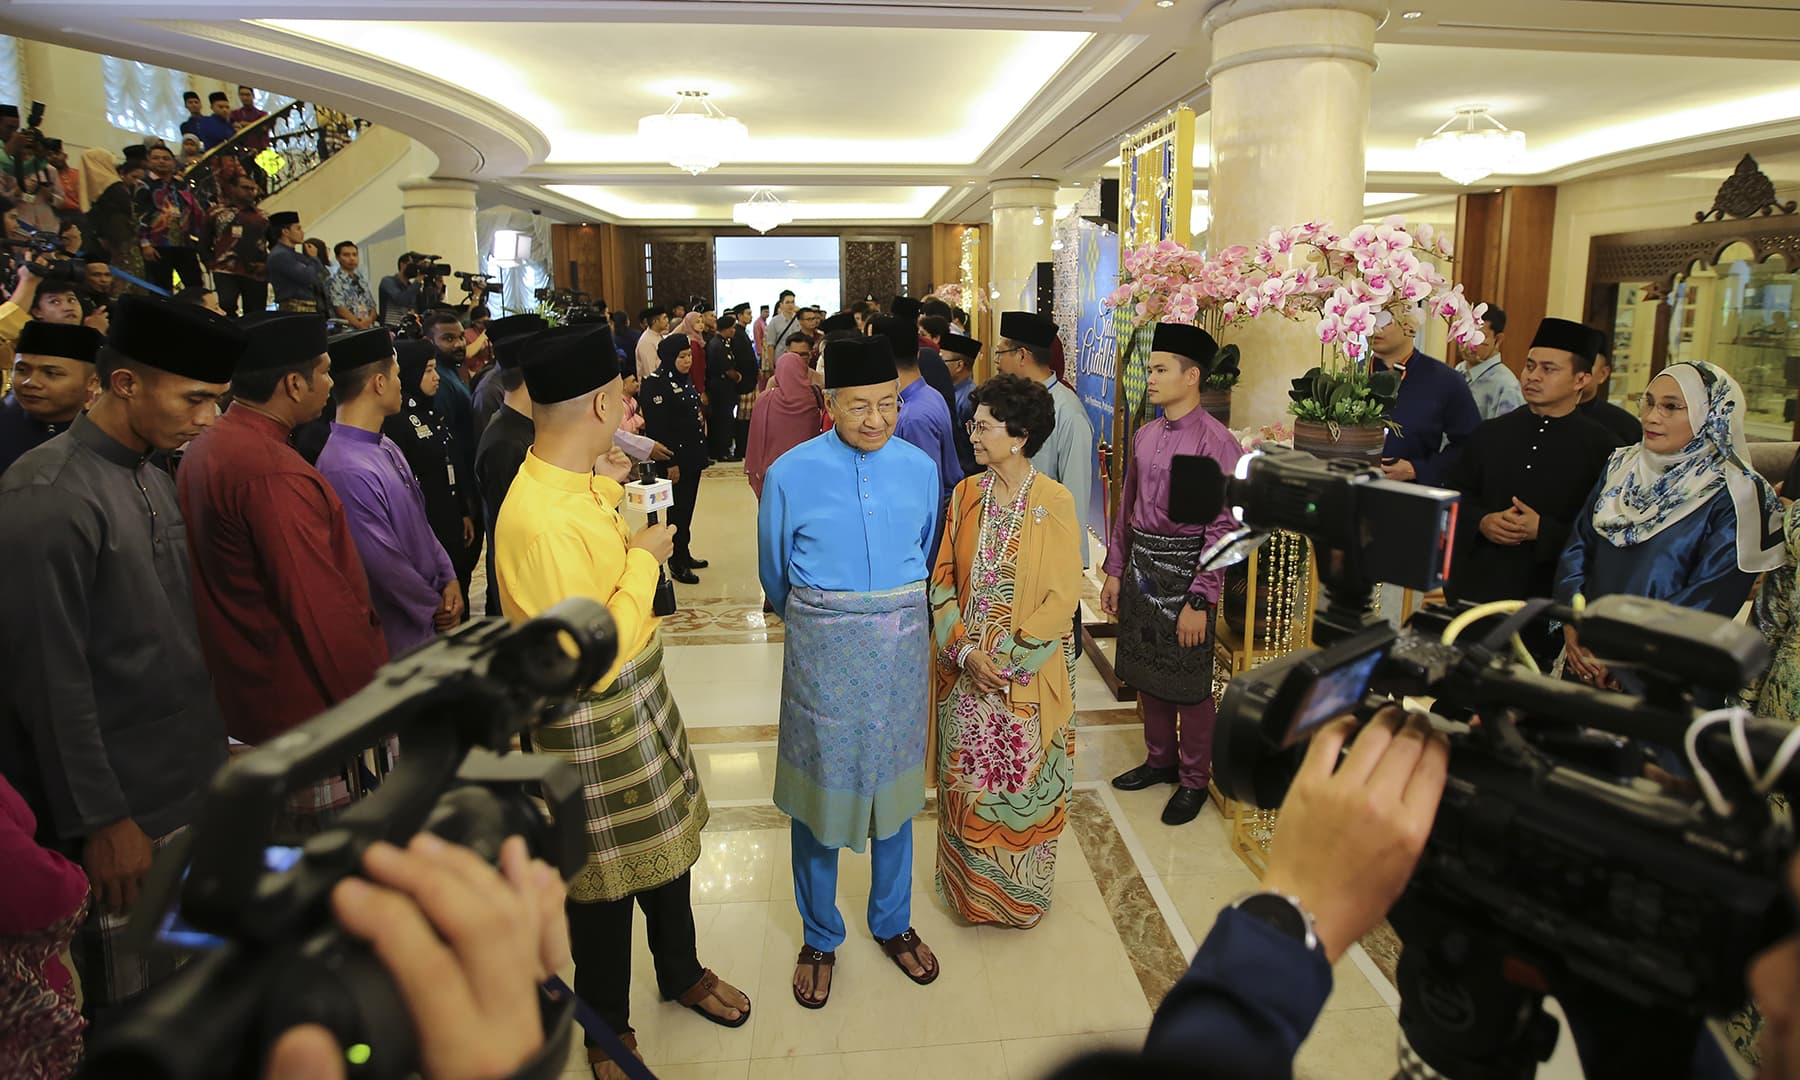 Malaysia Prime Minister Mahathir Mohamad accompanied by his wife Siti Hasmah as they were interviewed by media at Eidul Fitr open house celebration in Putrajaya, Malaysia on Wednesday, June 5. — AP